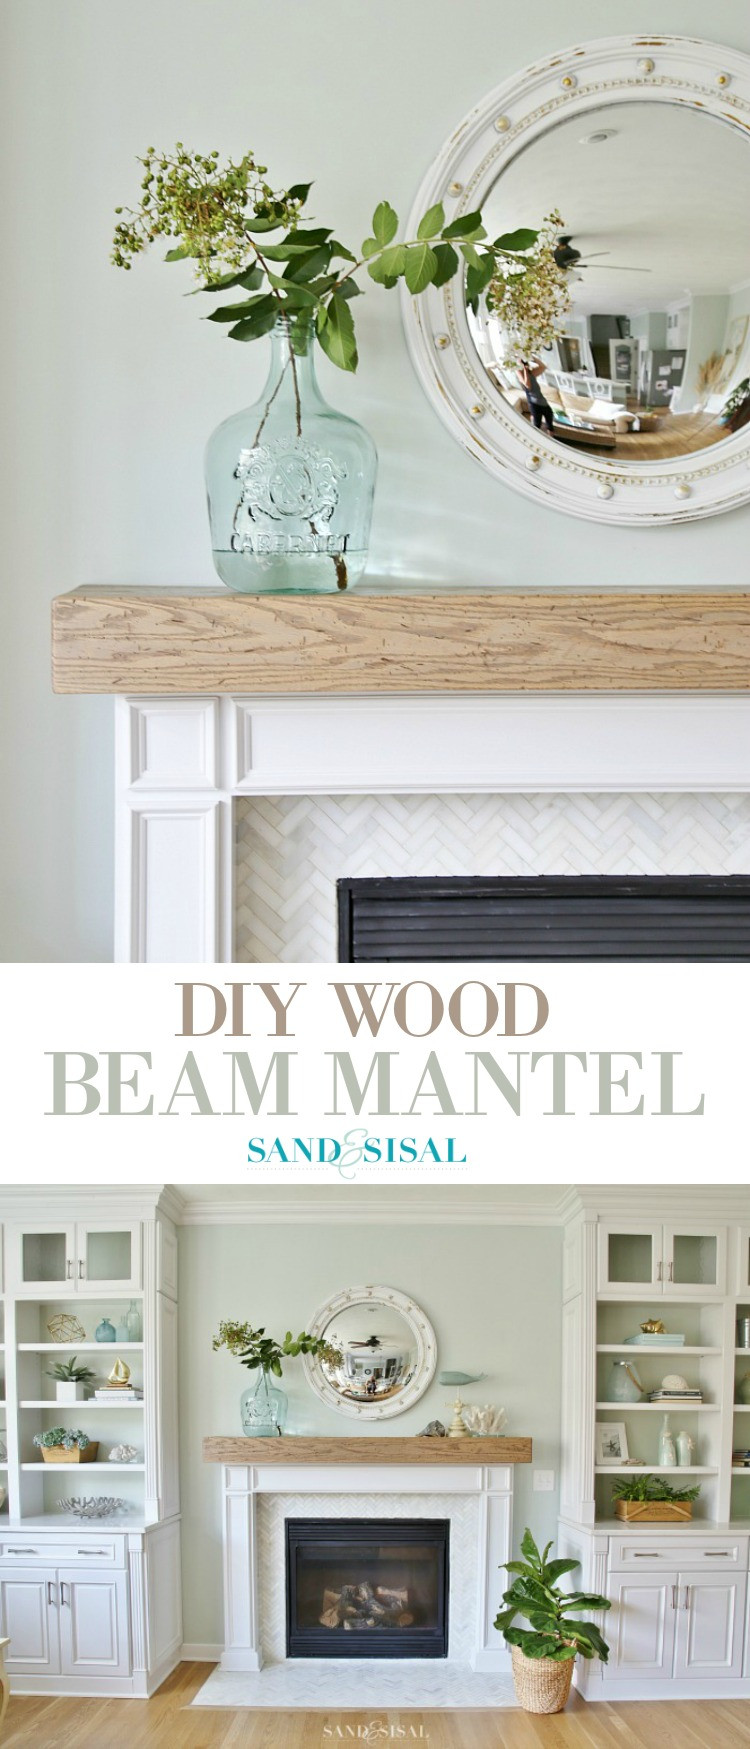 Best ideas about DIY Wood Mantel . Save or Pin DIY Wood Beam Mantel Now.